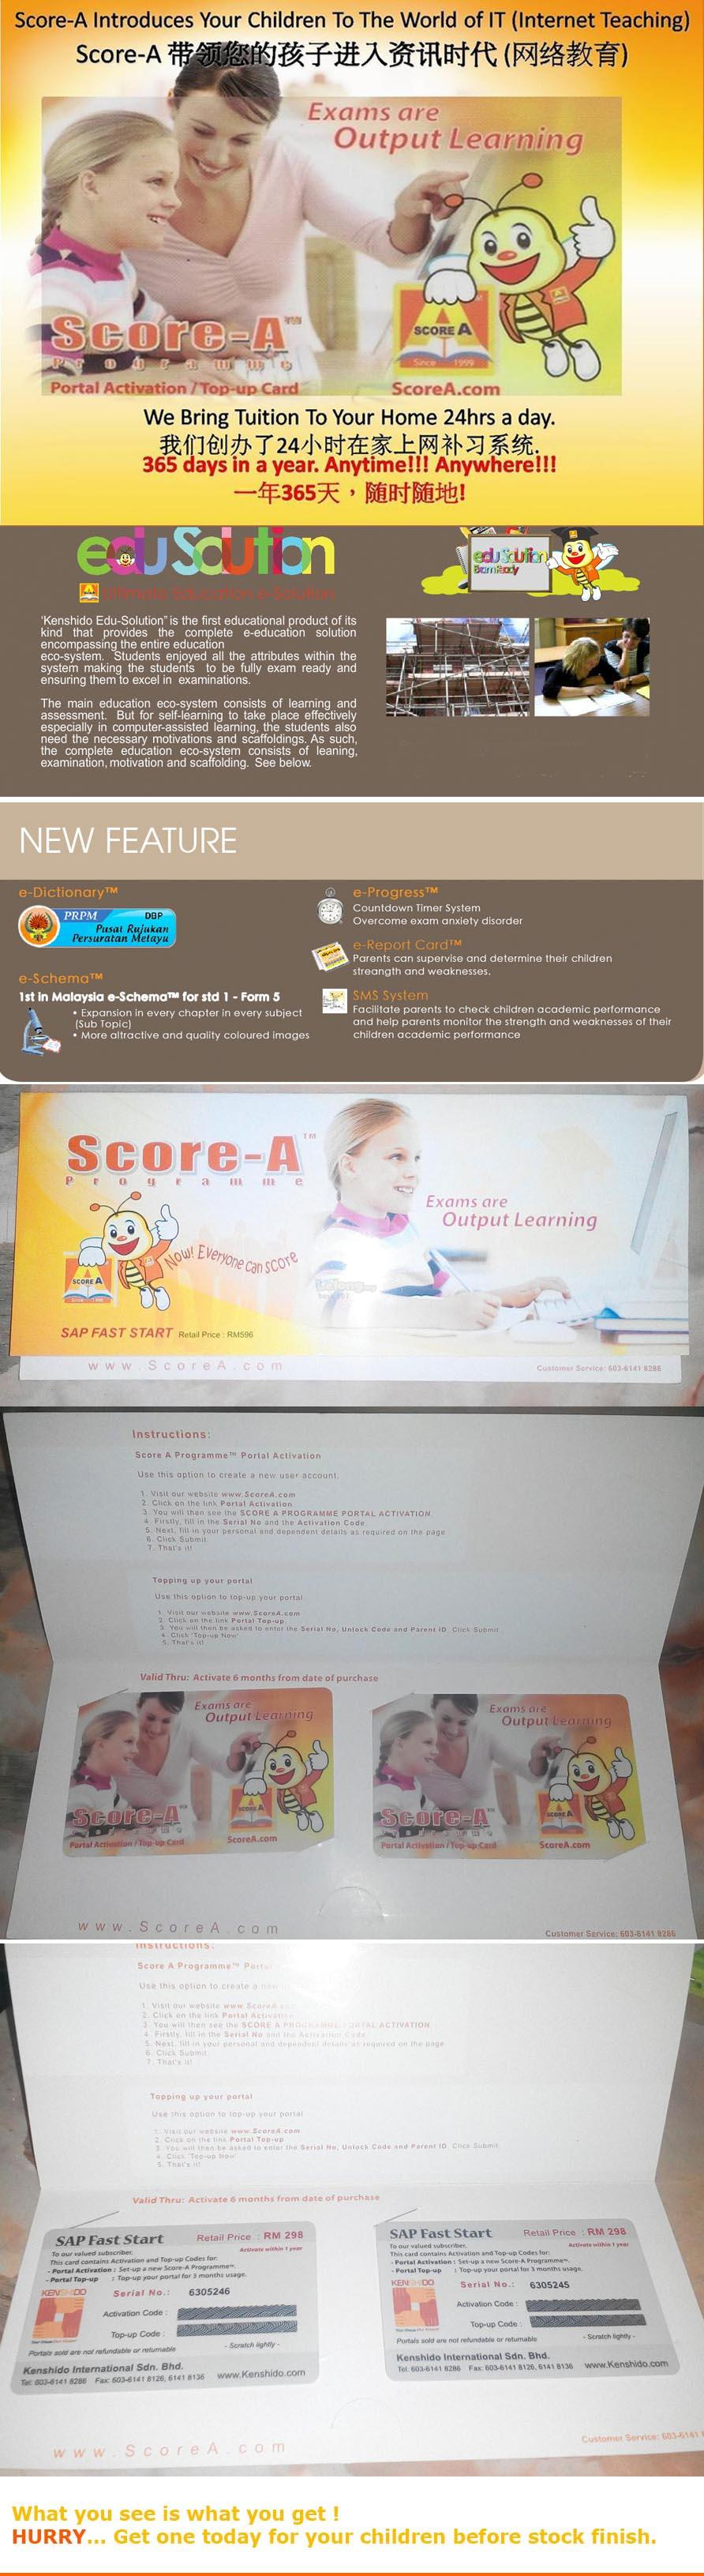 Score A e-Learning Online - 1 Year 2 Kids (All Subjects)